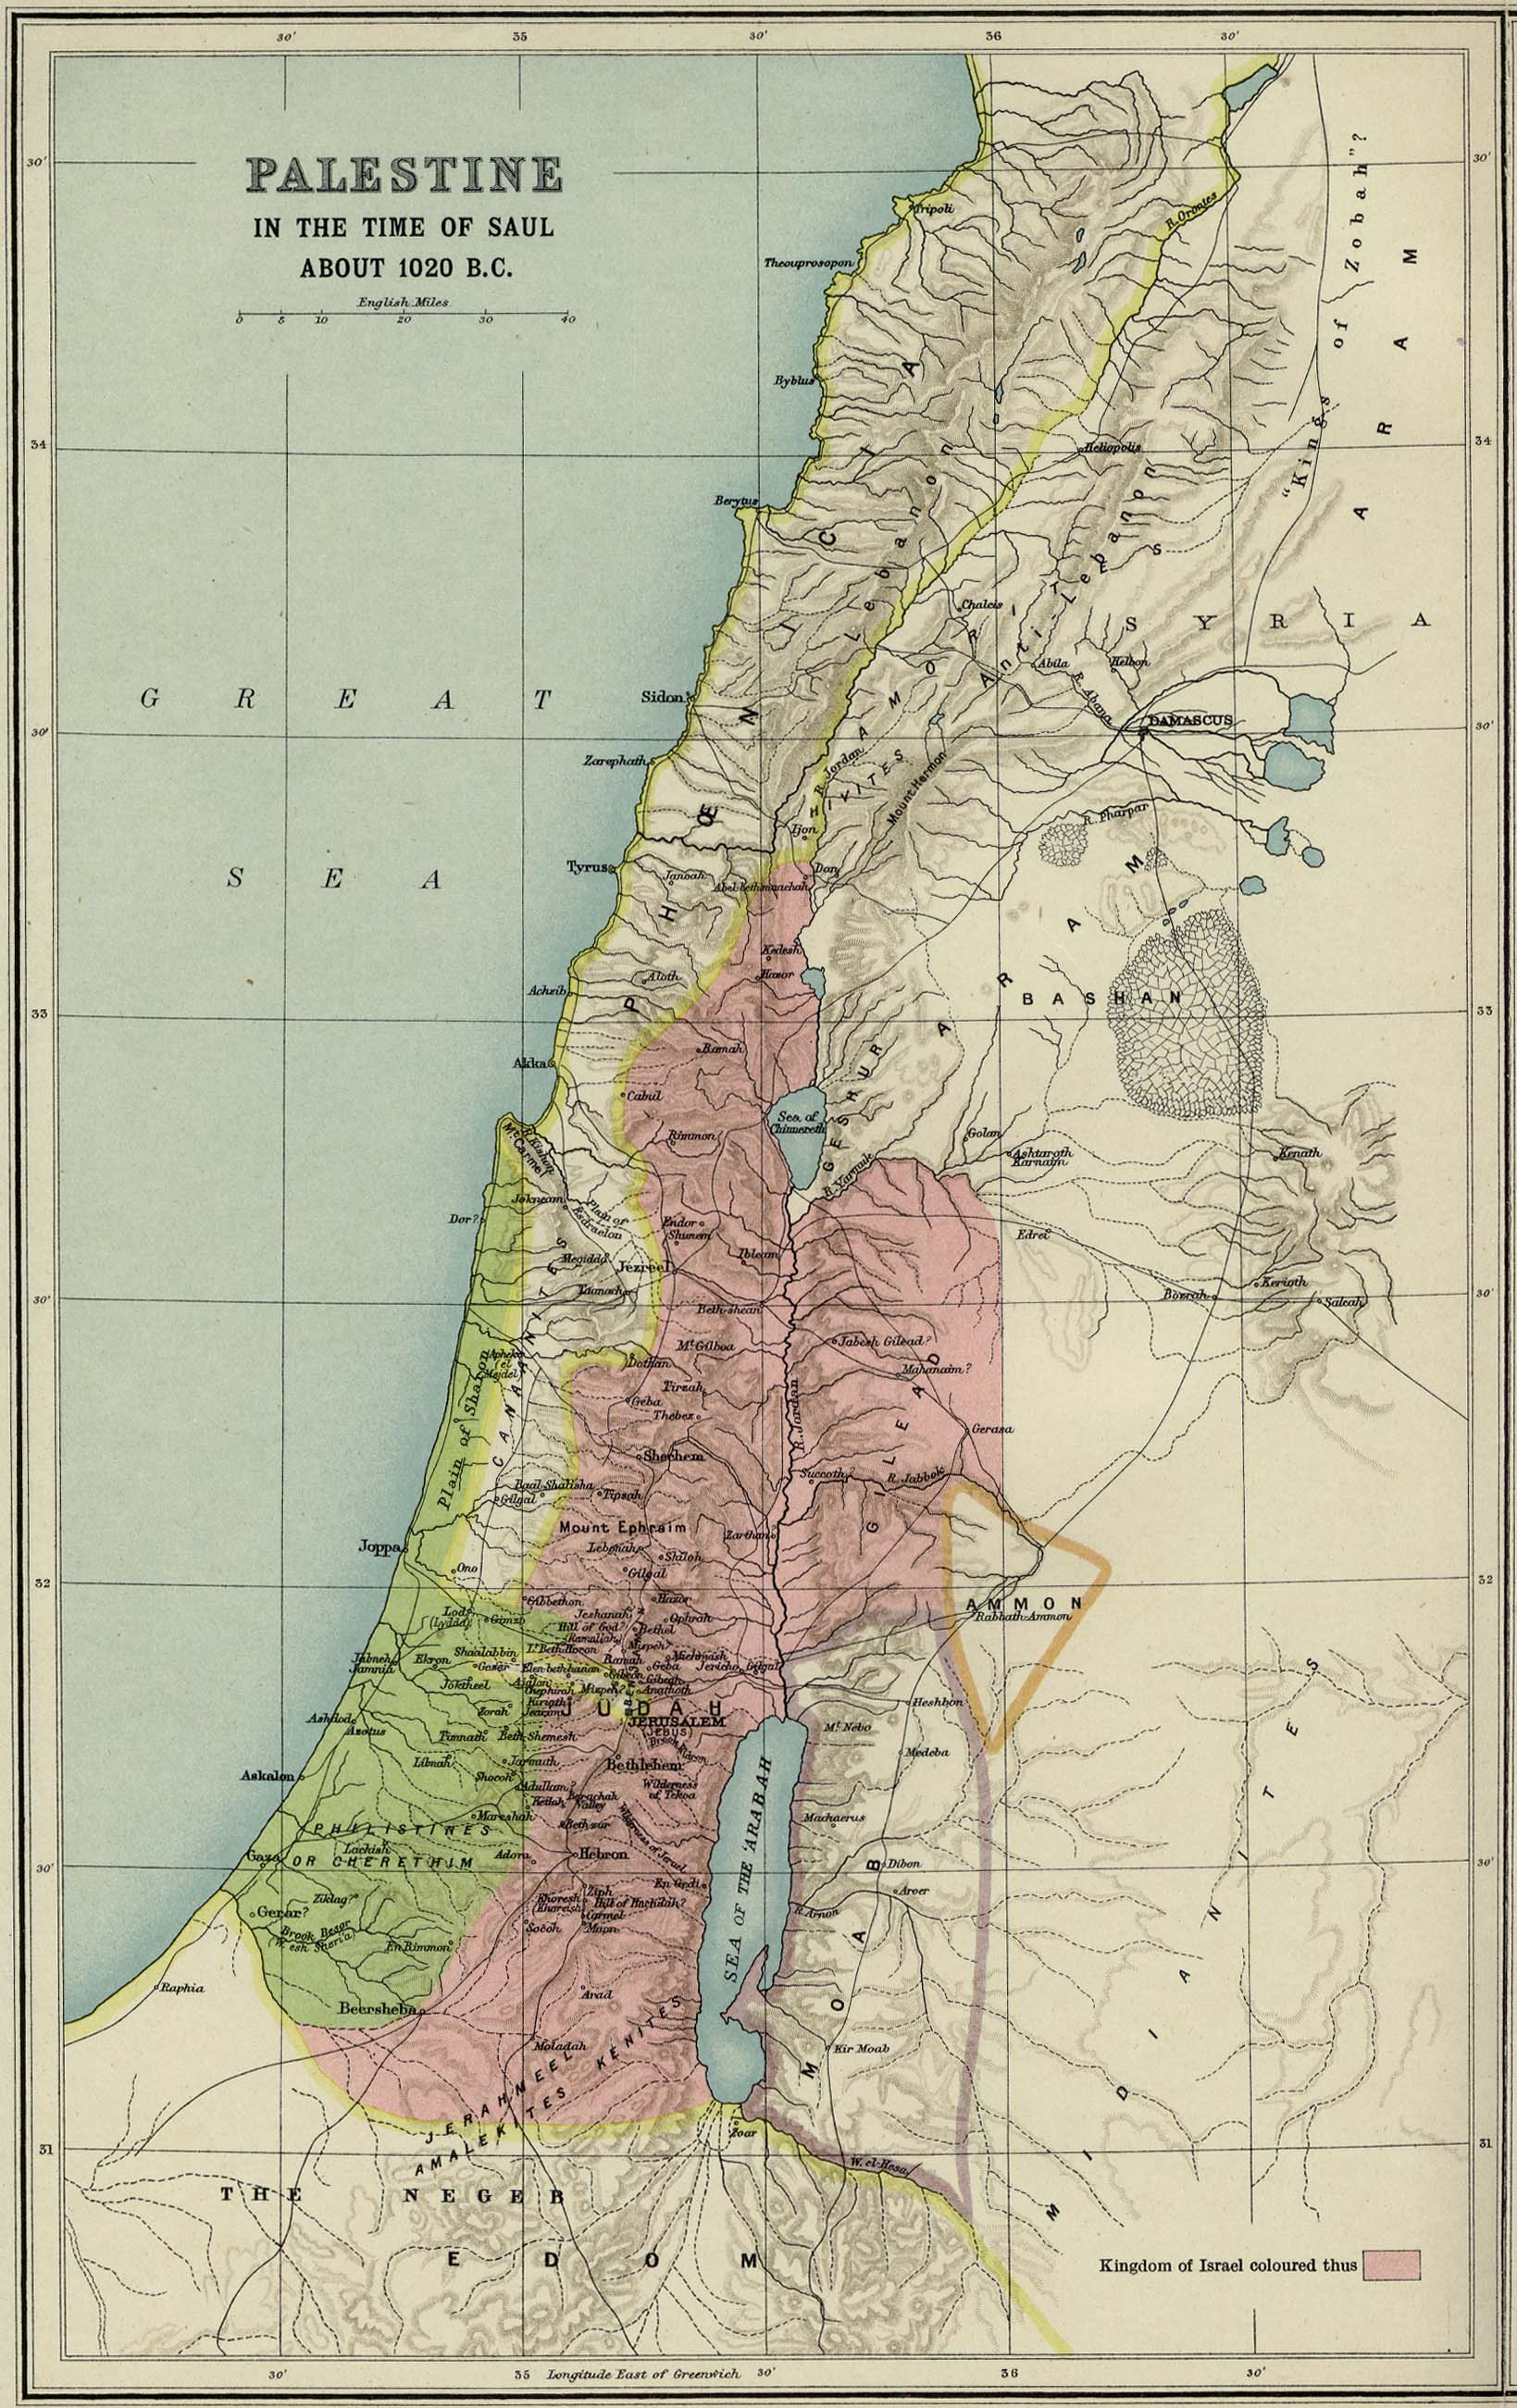 """Palestine in the time of Saul."" From Atlas of the Historical Geography of the Holy Land. Smith, George Adam. London, 1915."